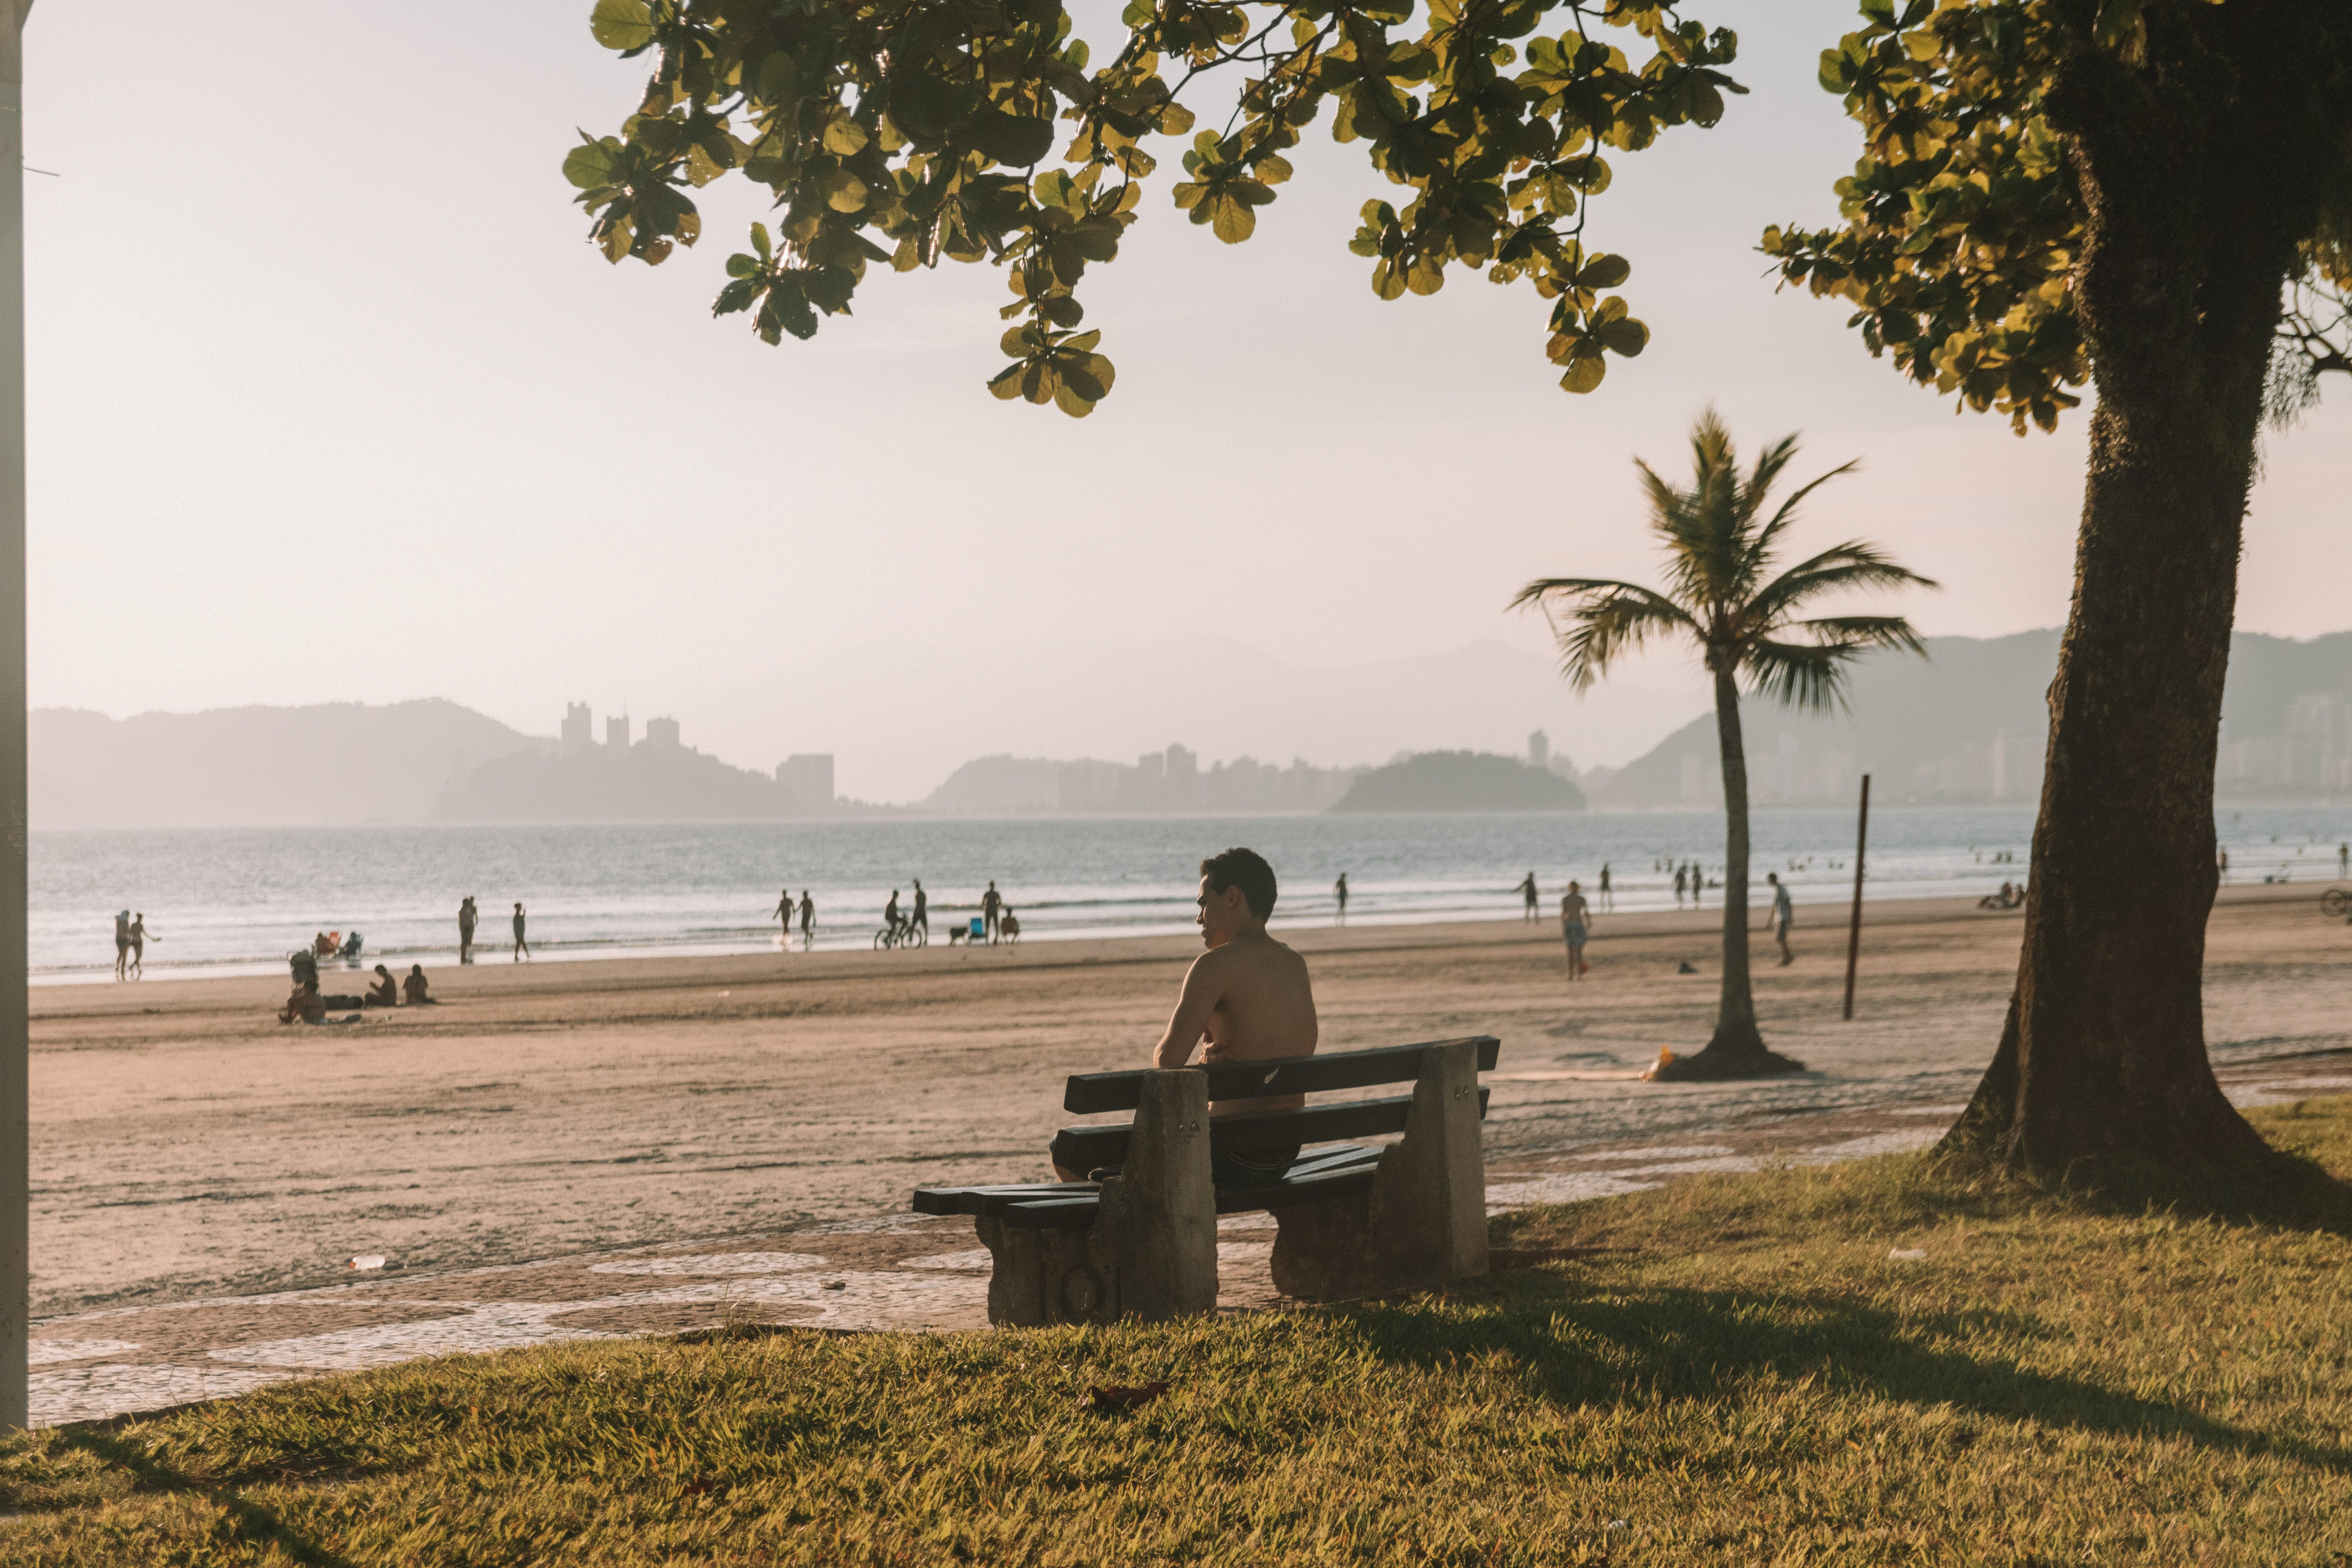 Shirtless Man Sitting on Bench Fronting Beach